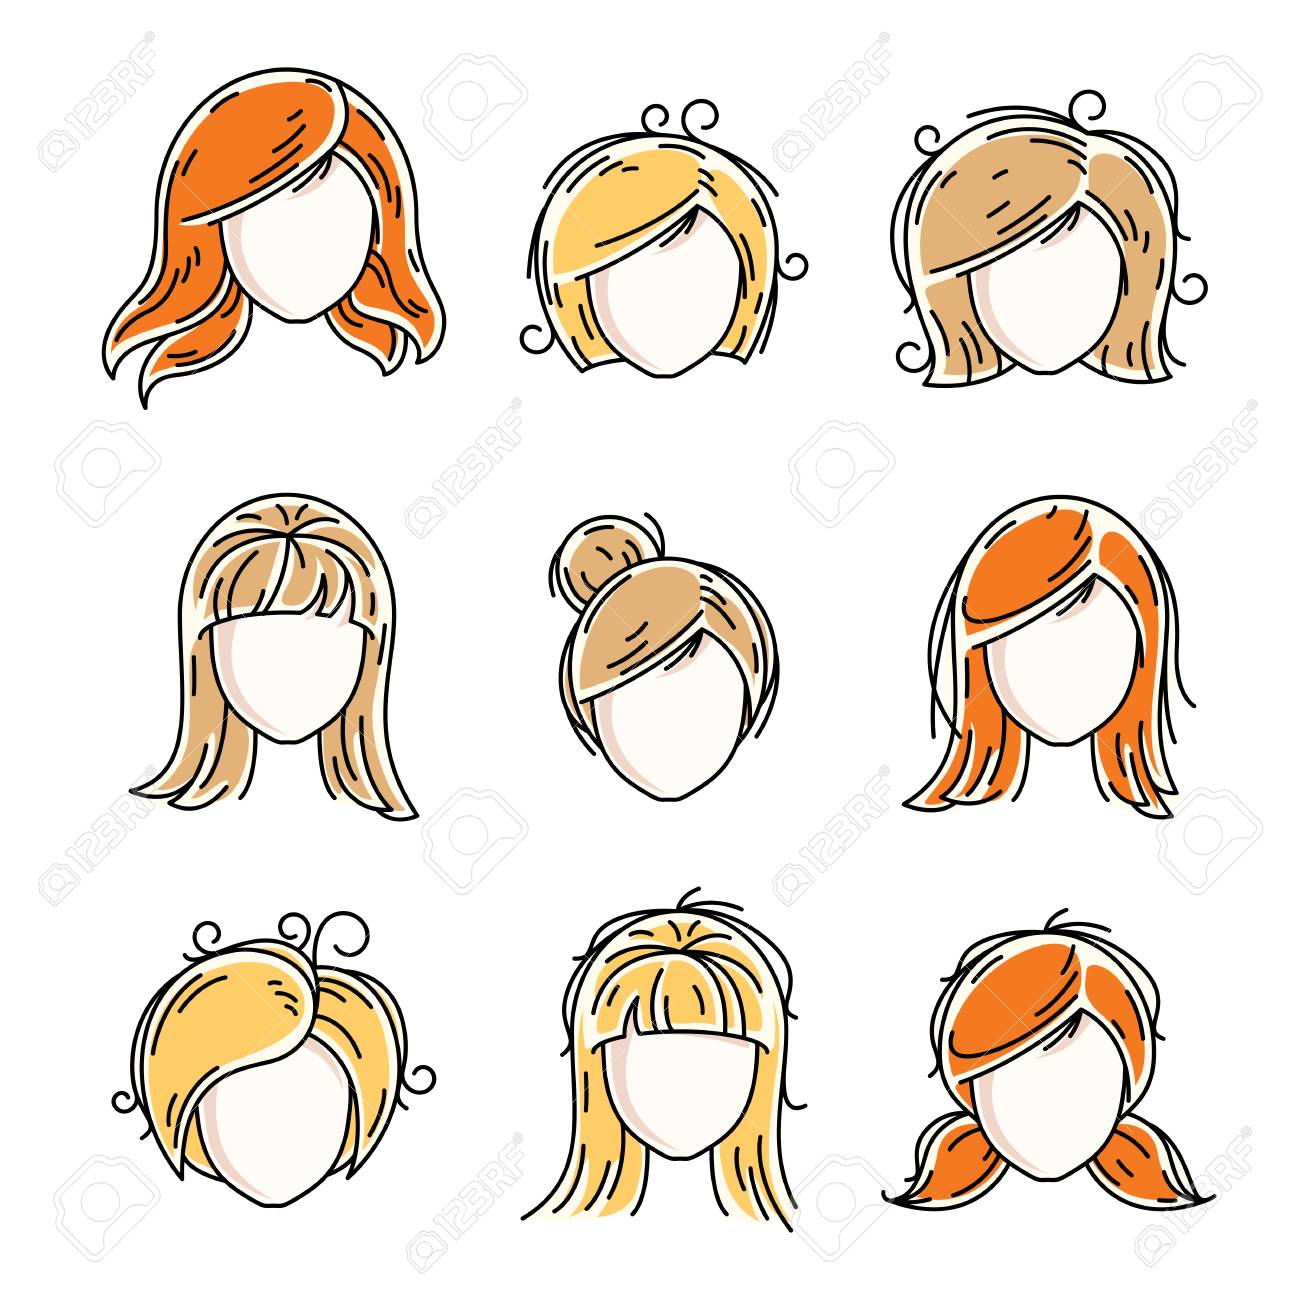 Collection Of Women Faces Human Heads Diverse Vector Characters Royalty Free Cliparts Vectors And Stock Illustration Image 79508152